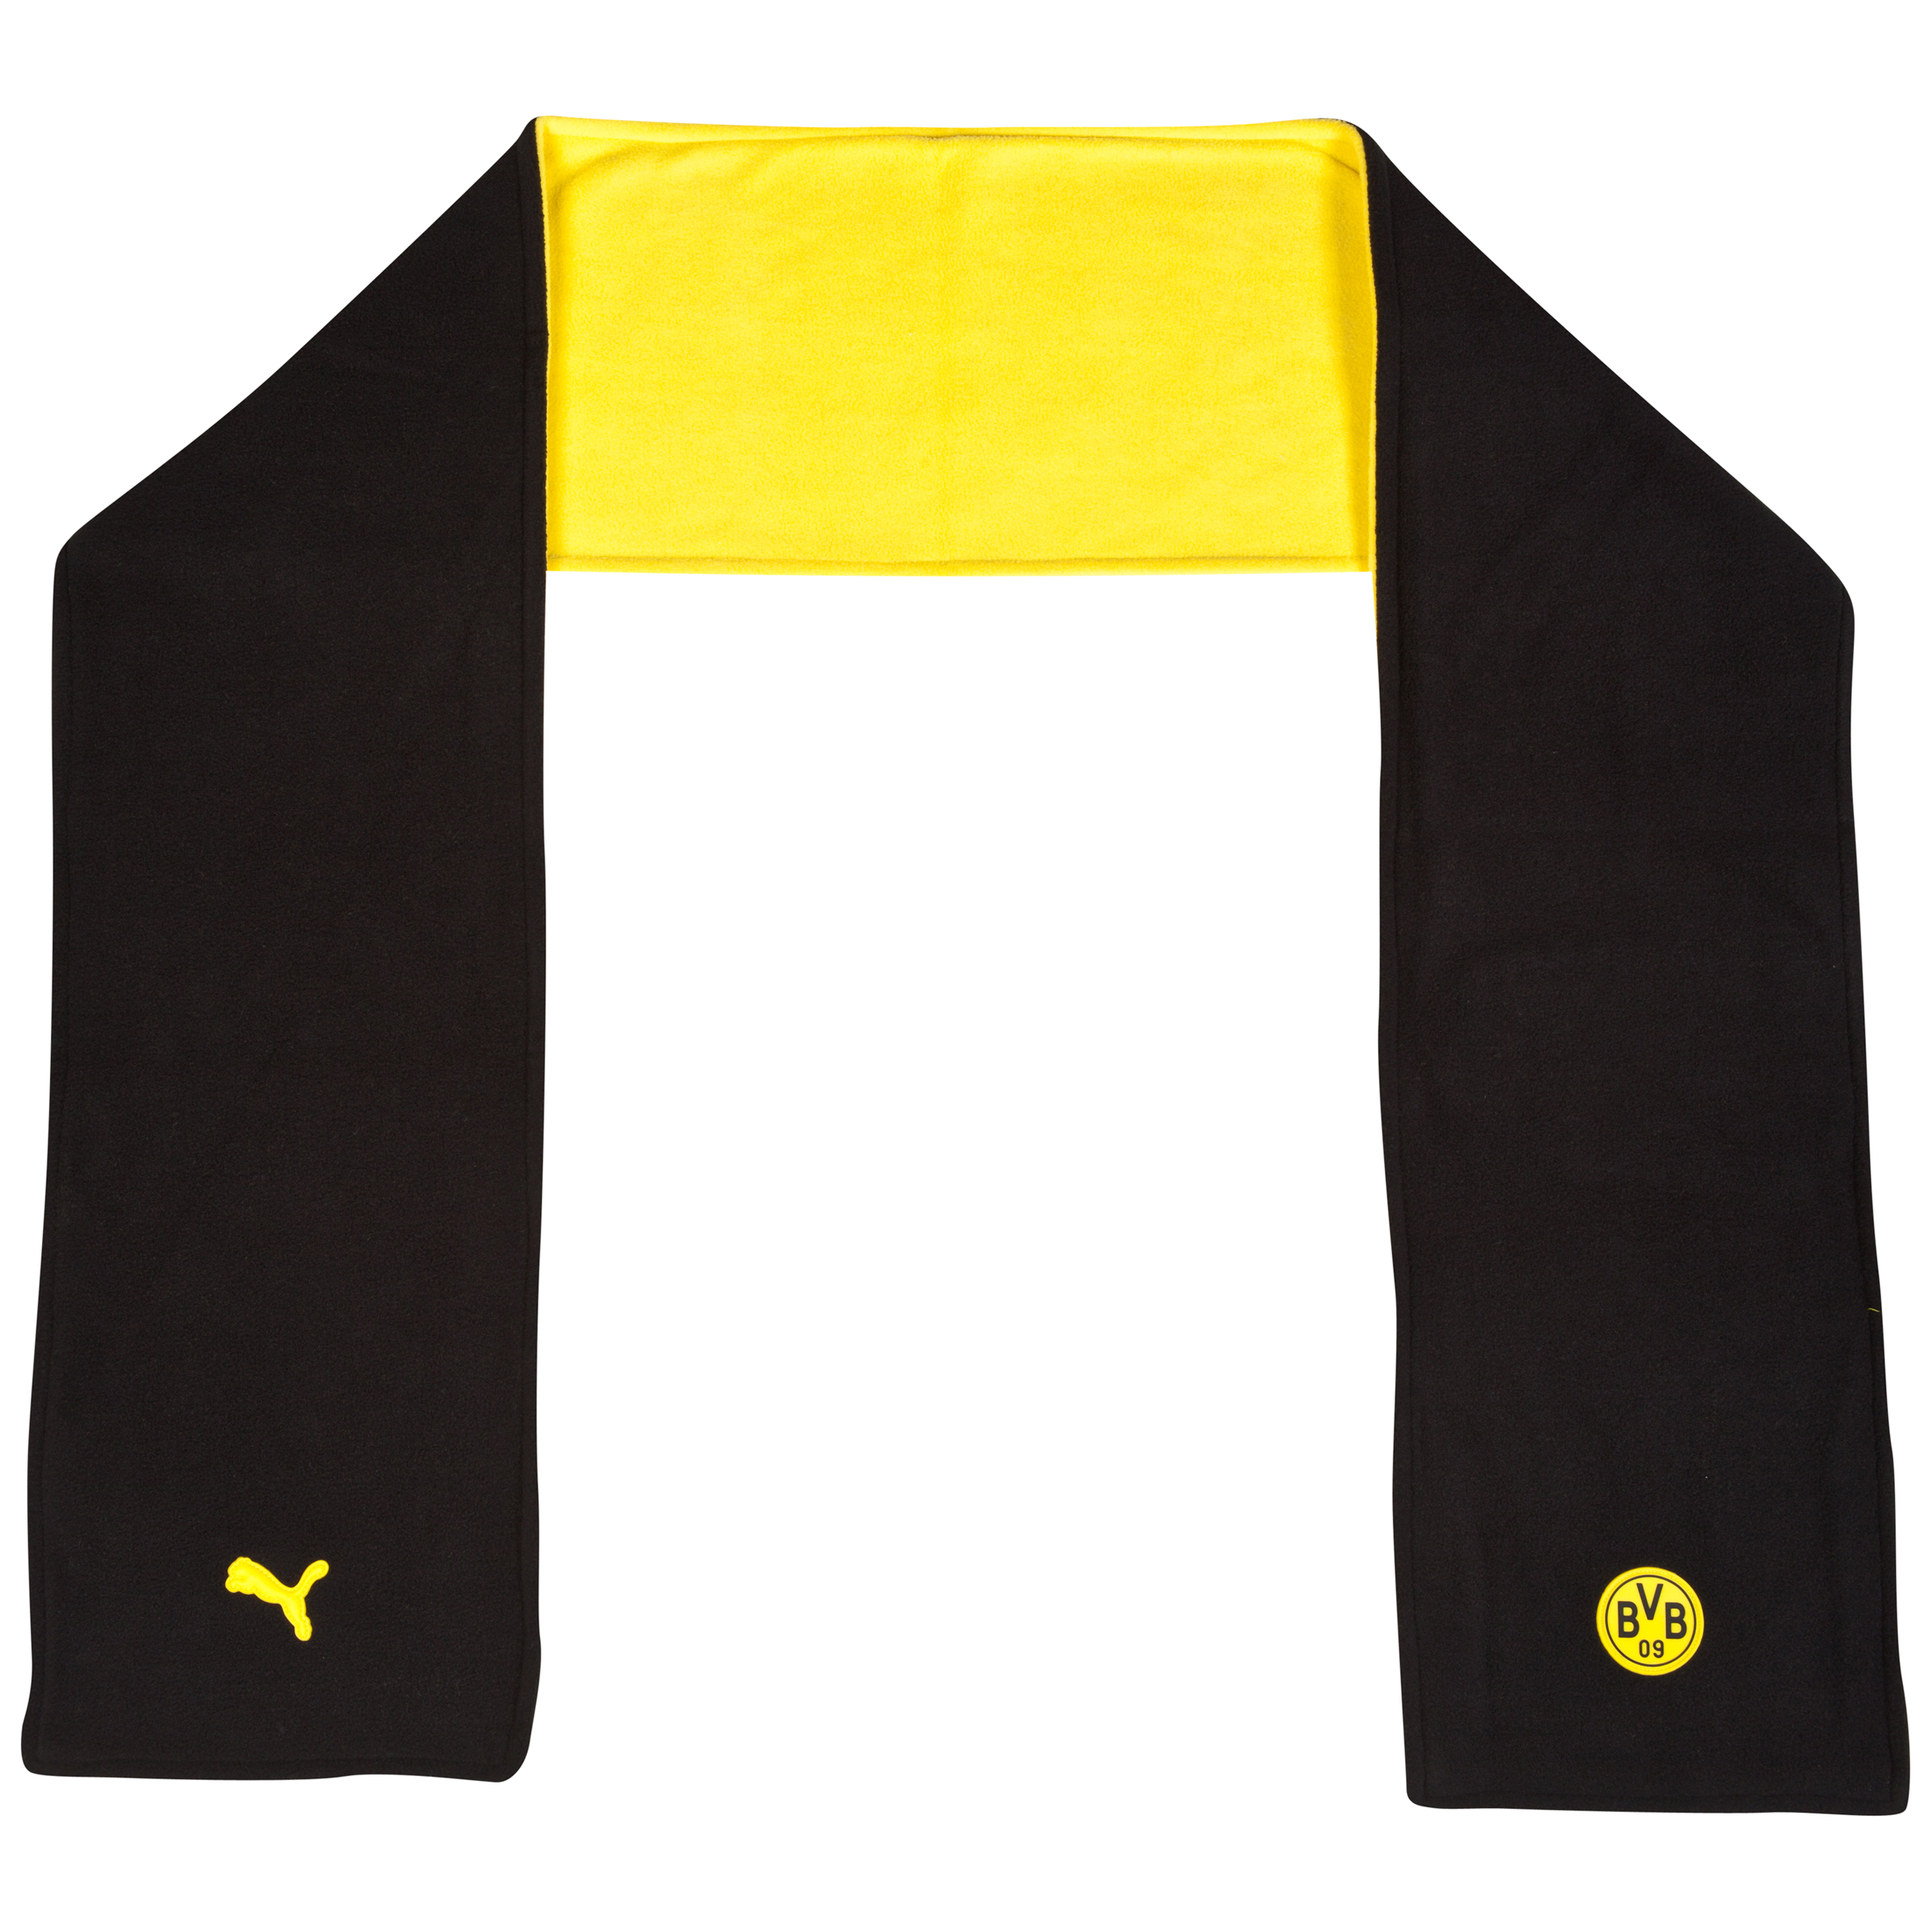 BVB Fleece Scarf